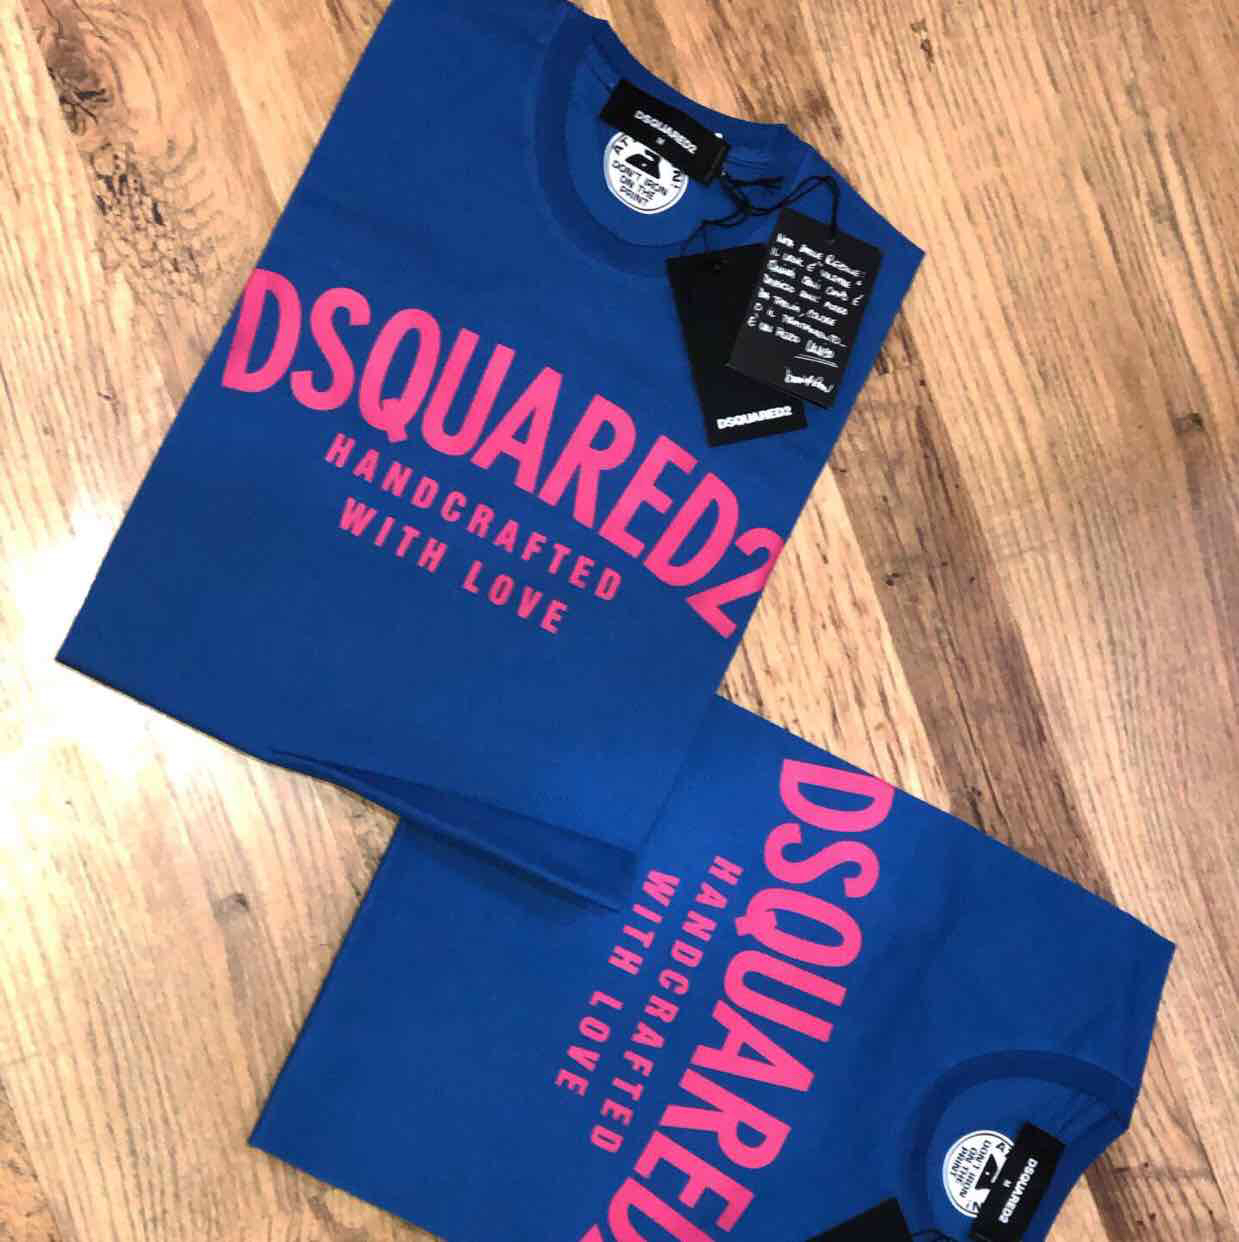 Dsquared2 men's arch logo t-shirt in blue and pink Retail price £160 my price £85. Sizes available M,L,XLDsquared21